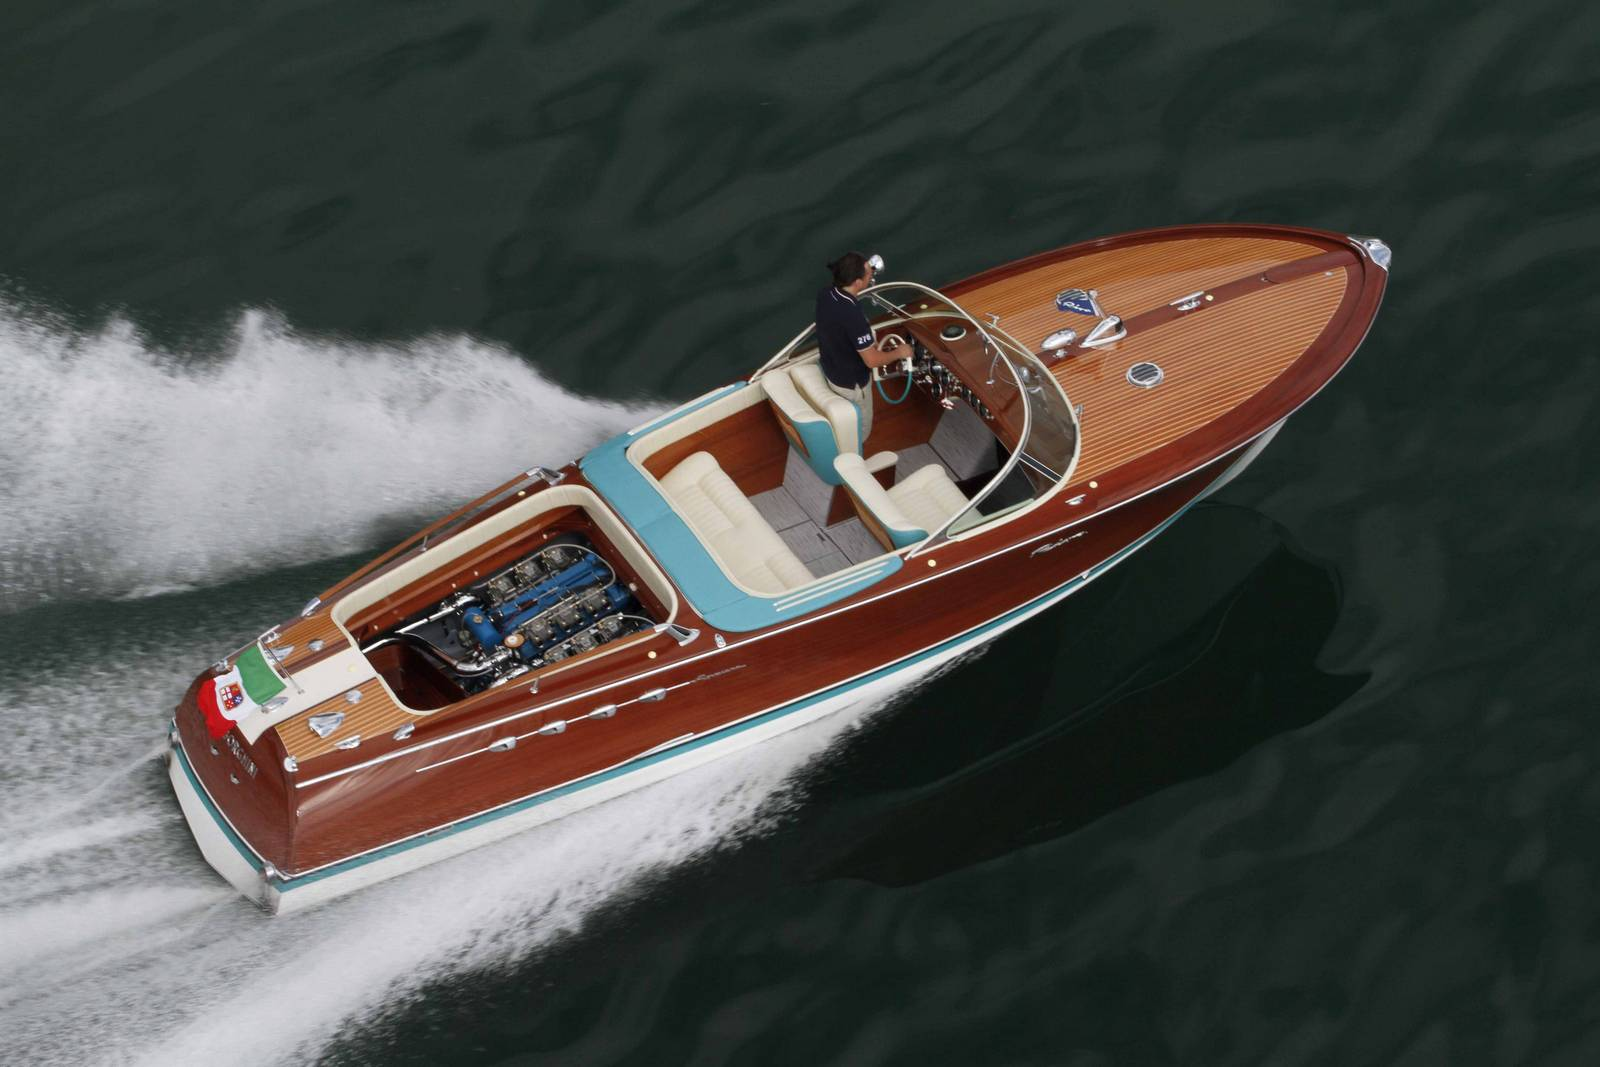 Ferrucio Riva Aquarama Boat Is UP FOR SALE It Features TWO ...